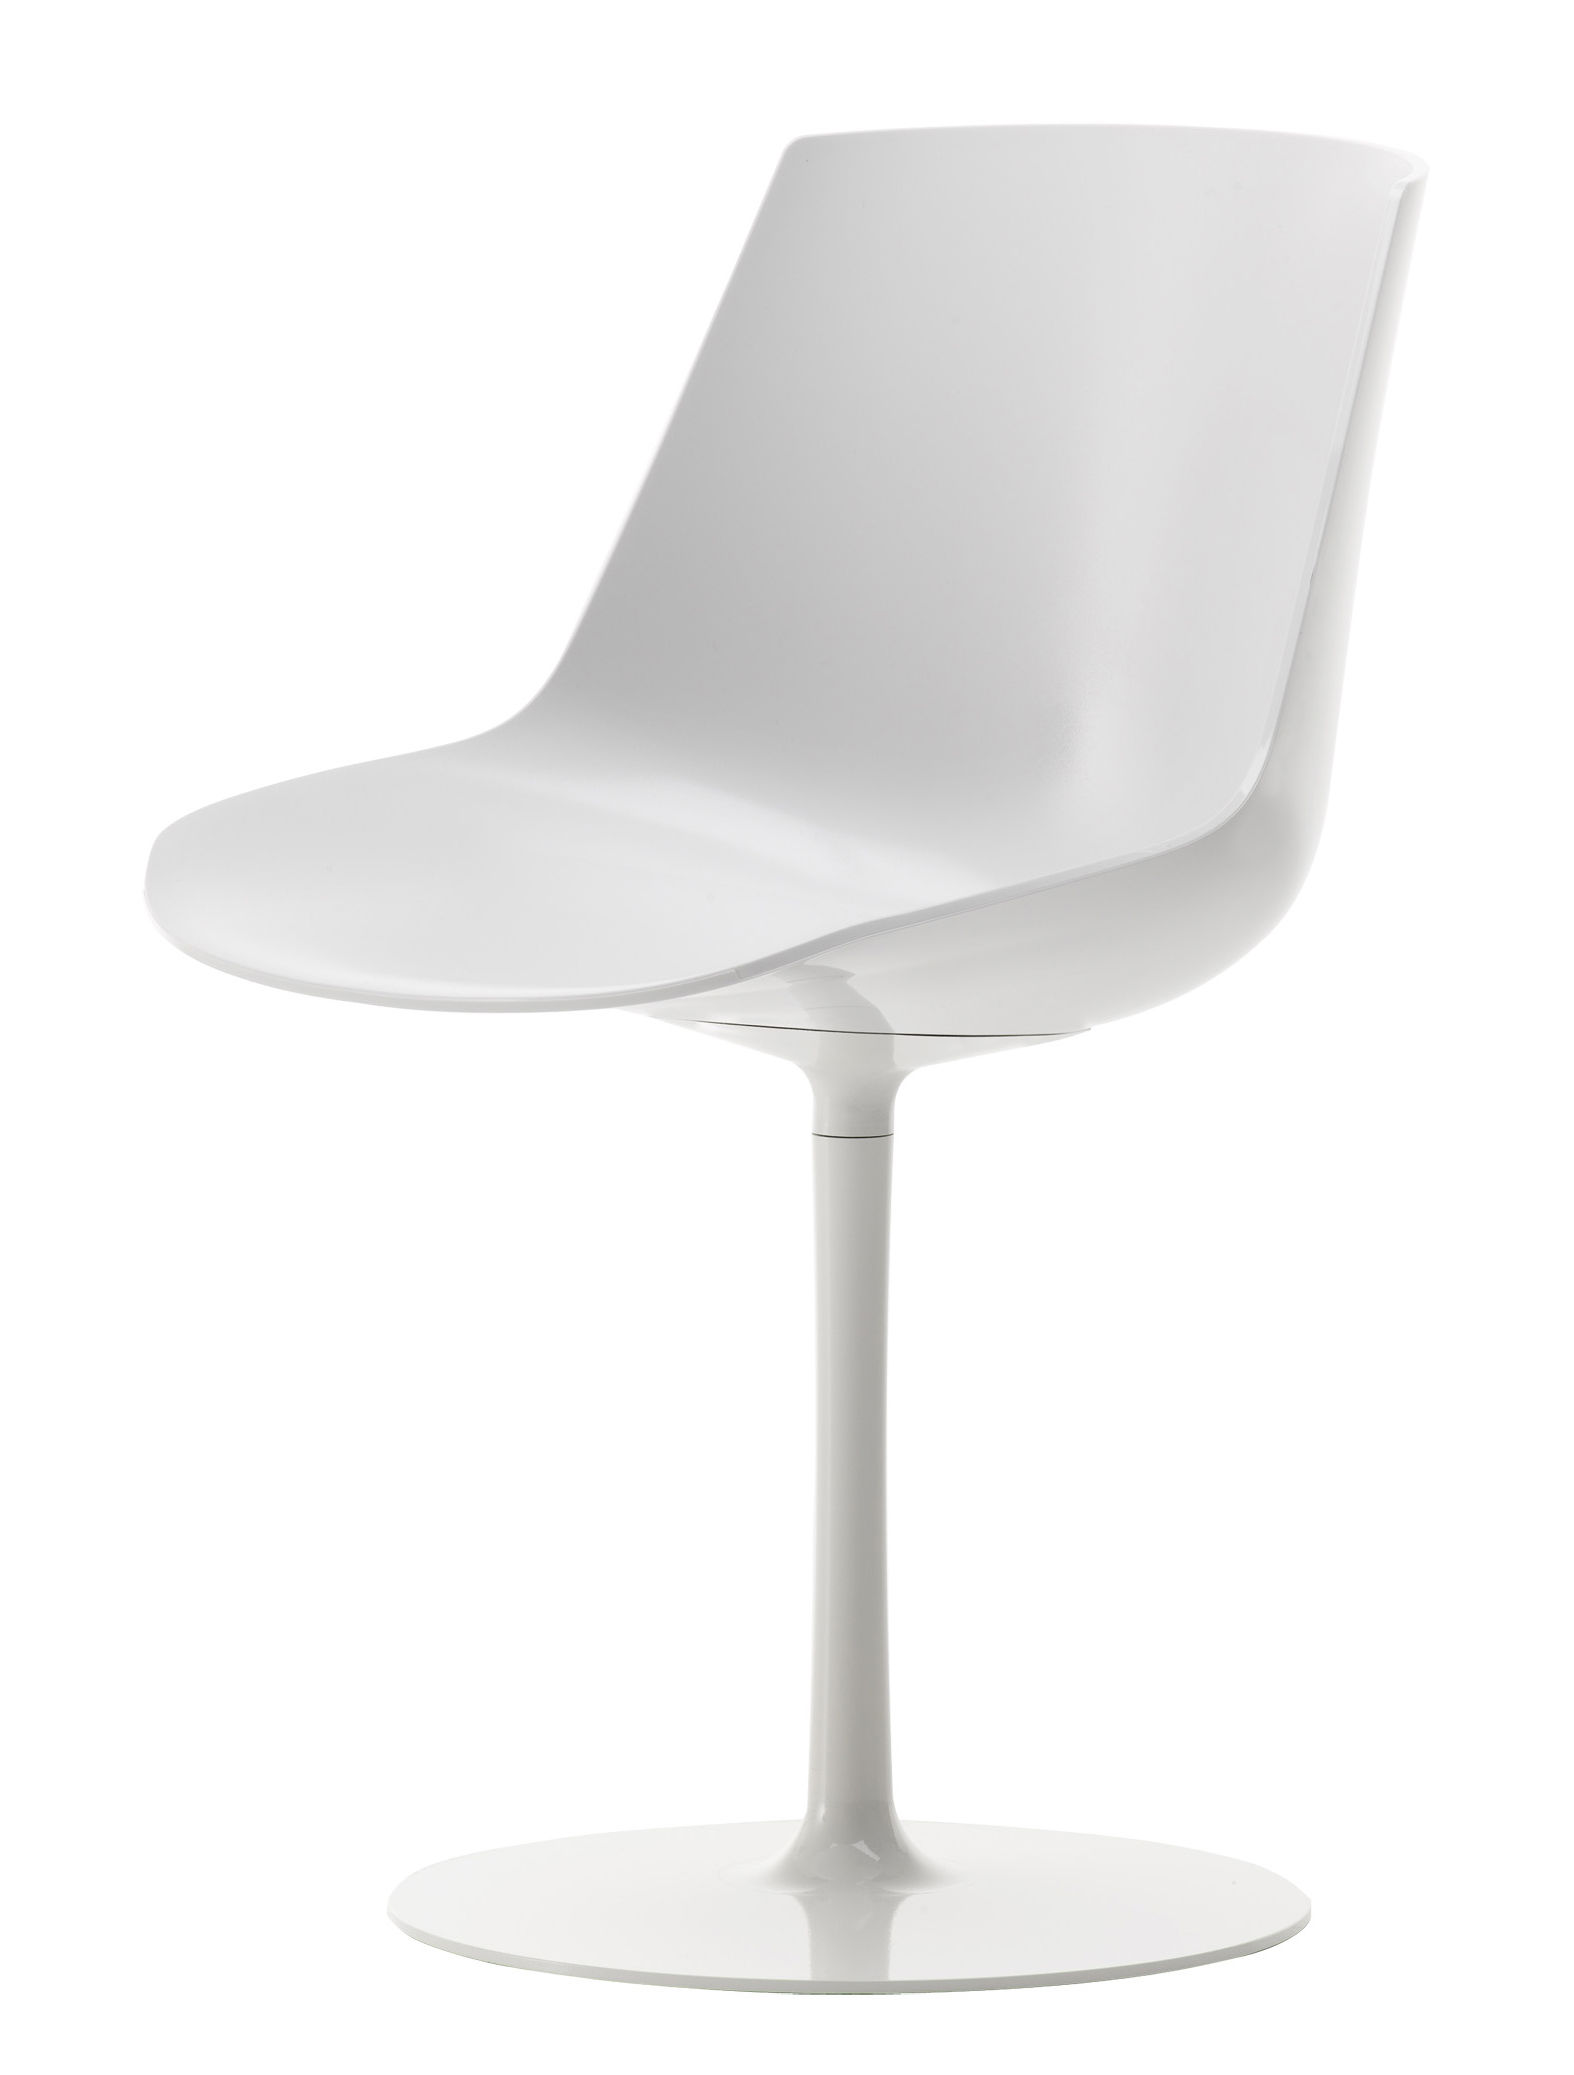 plastic swivel chair four dining set flow seat and metal legs white shell